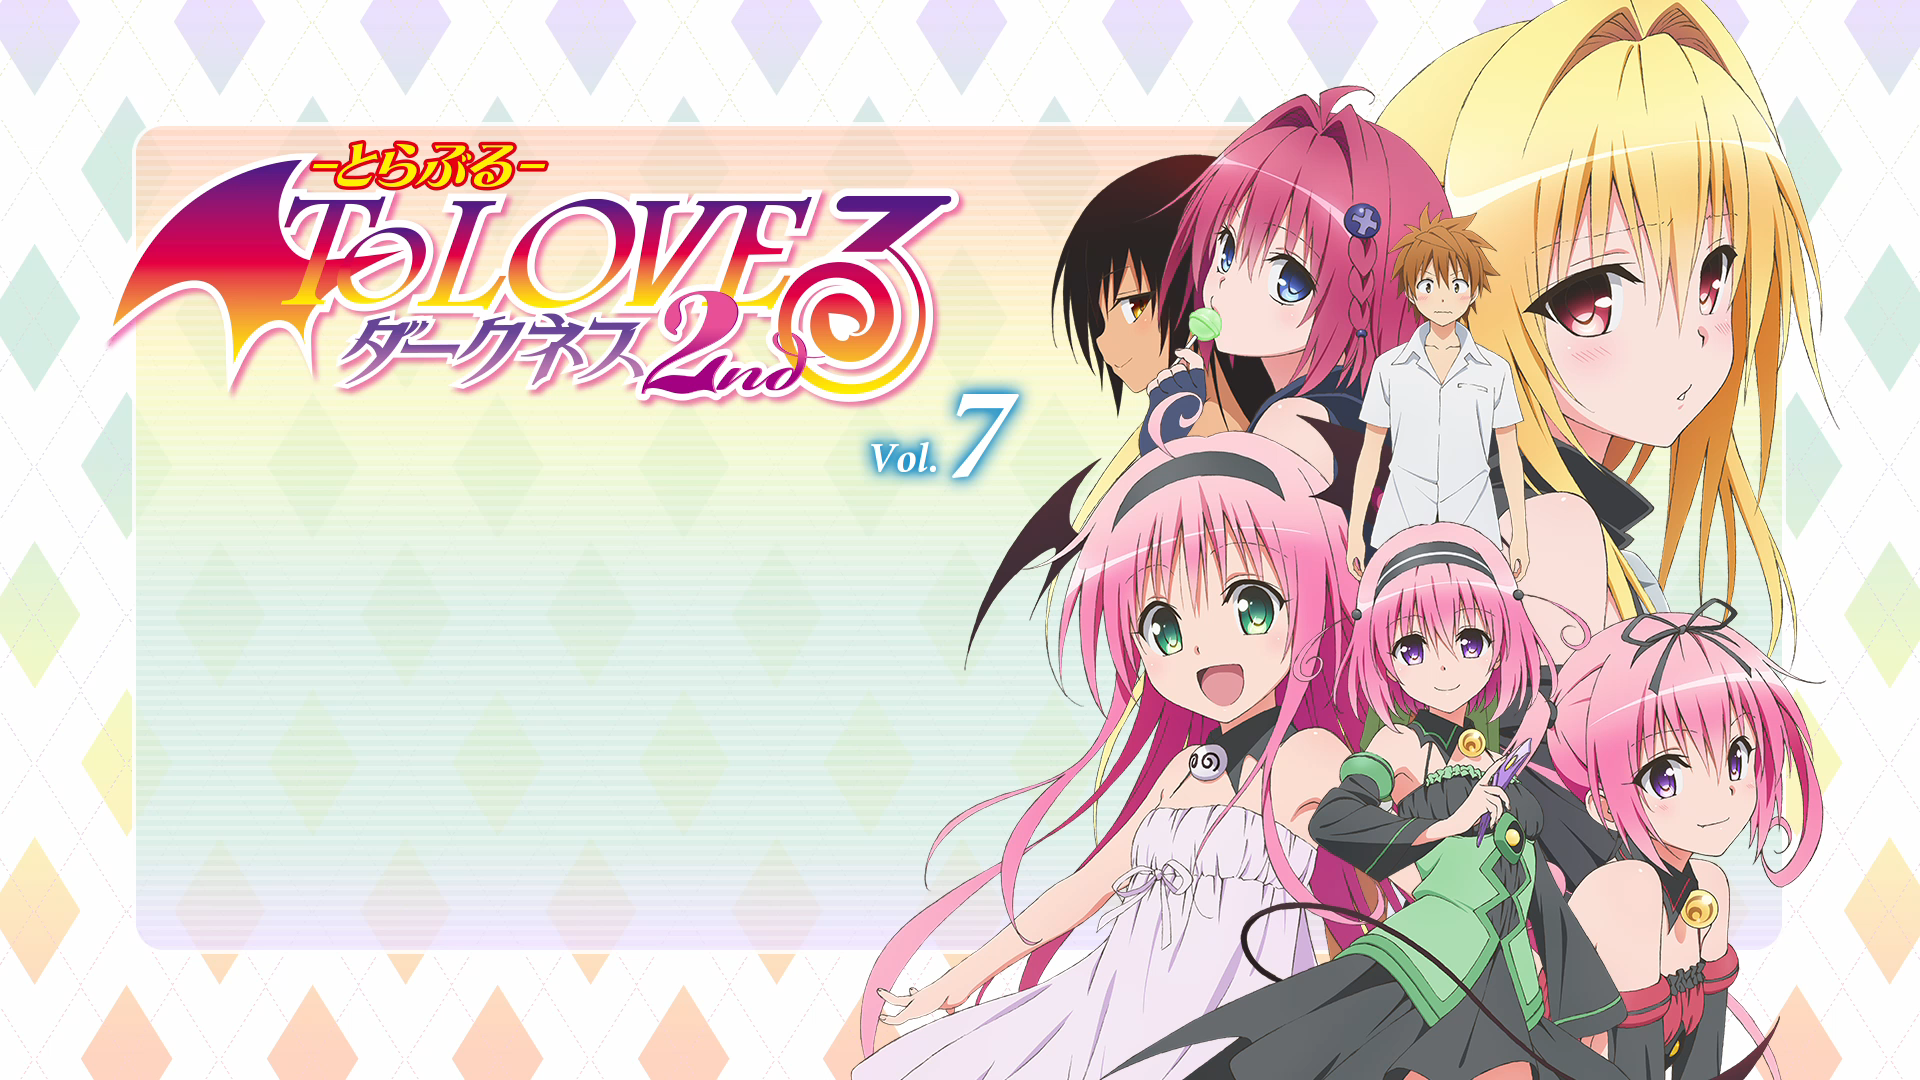 Wallpaper Hd To Love Ru Darkness : To Love-Ru: Darkness Full HD Wallpaper and Background 1920x1080 ID:696152